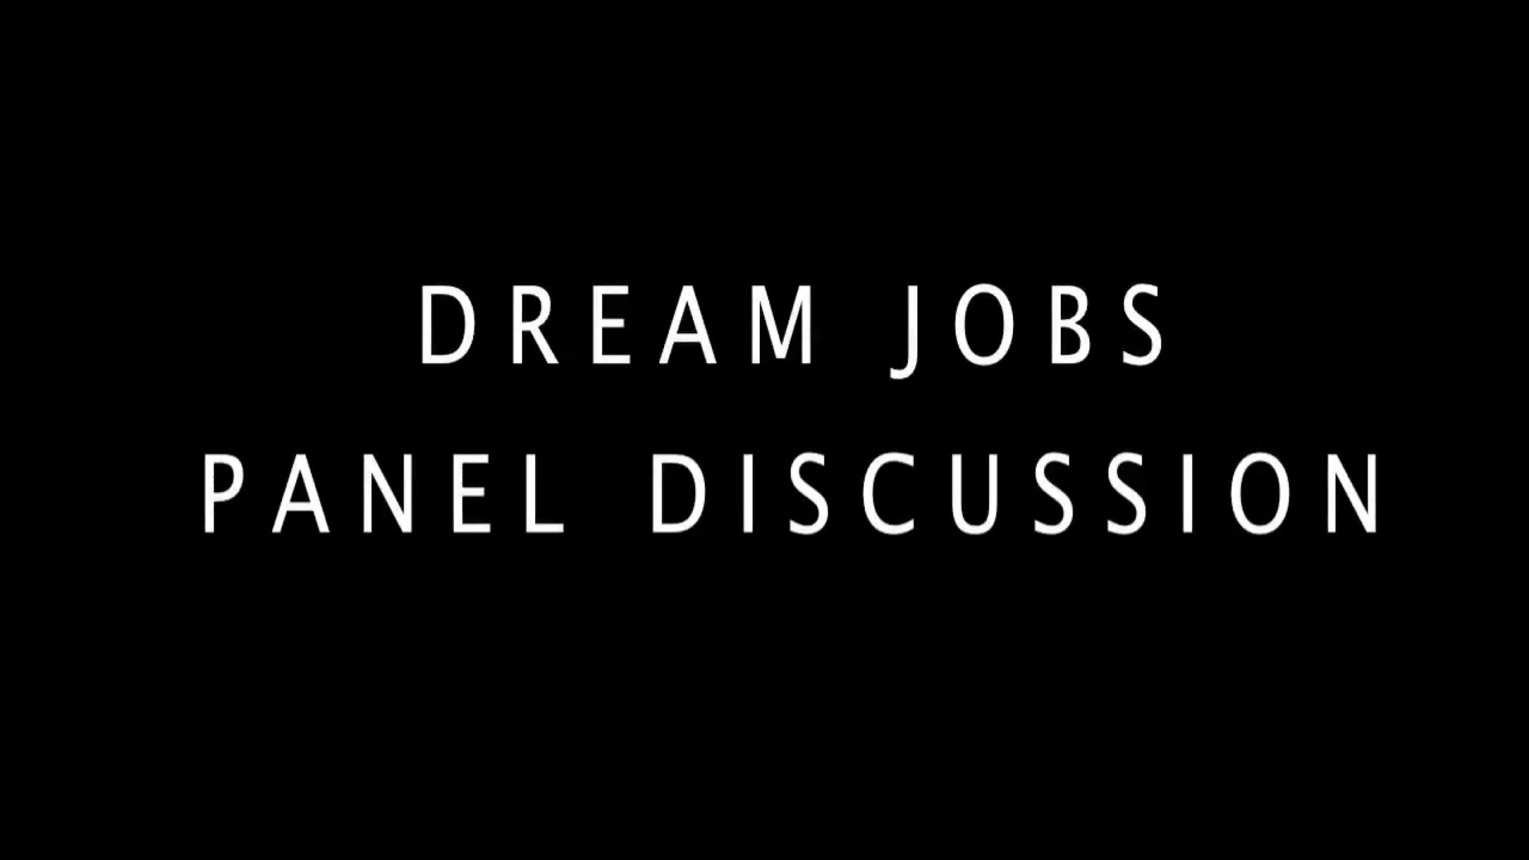 Dream Jobs - Panel Discussion (2013-HKN-SLC)